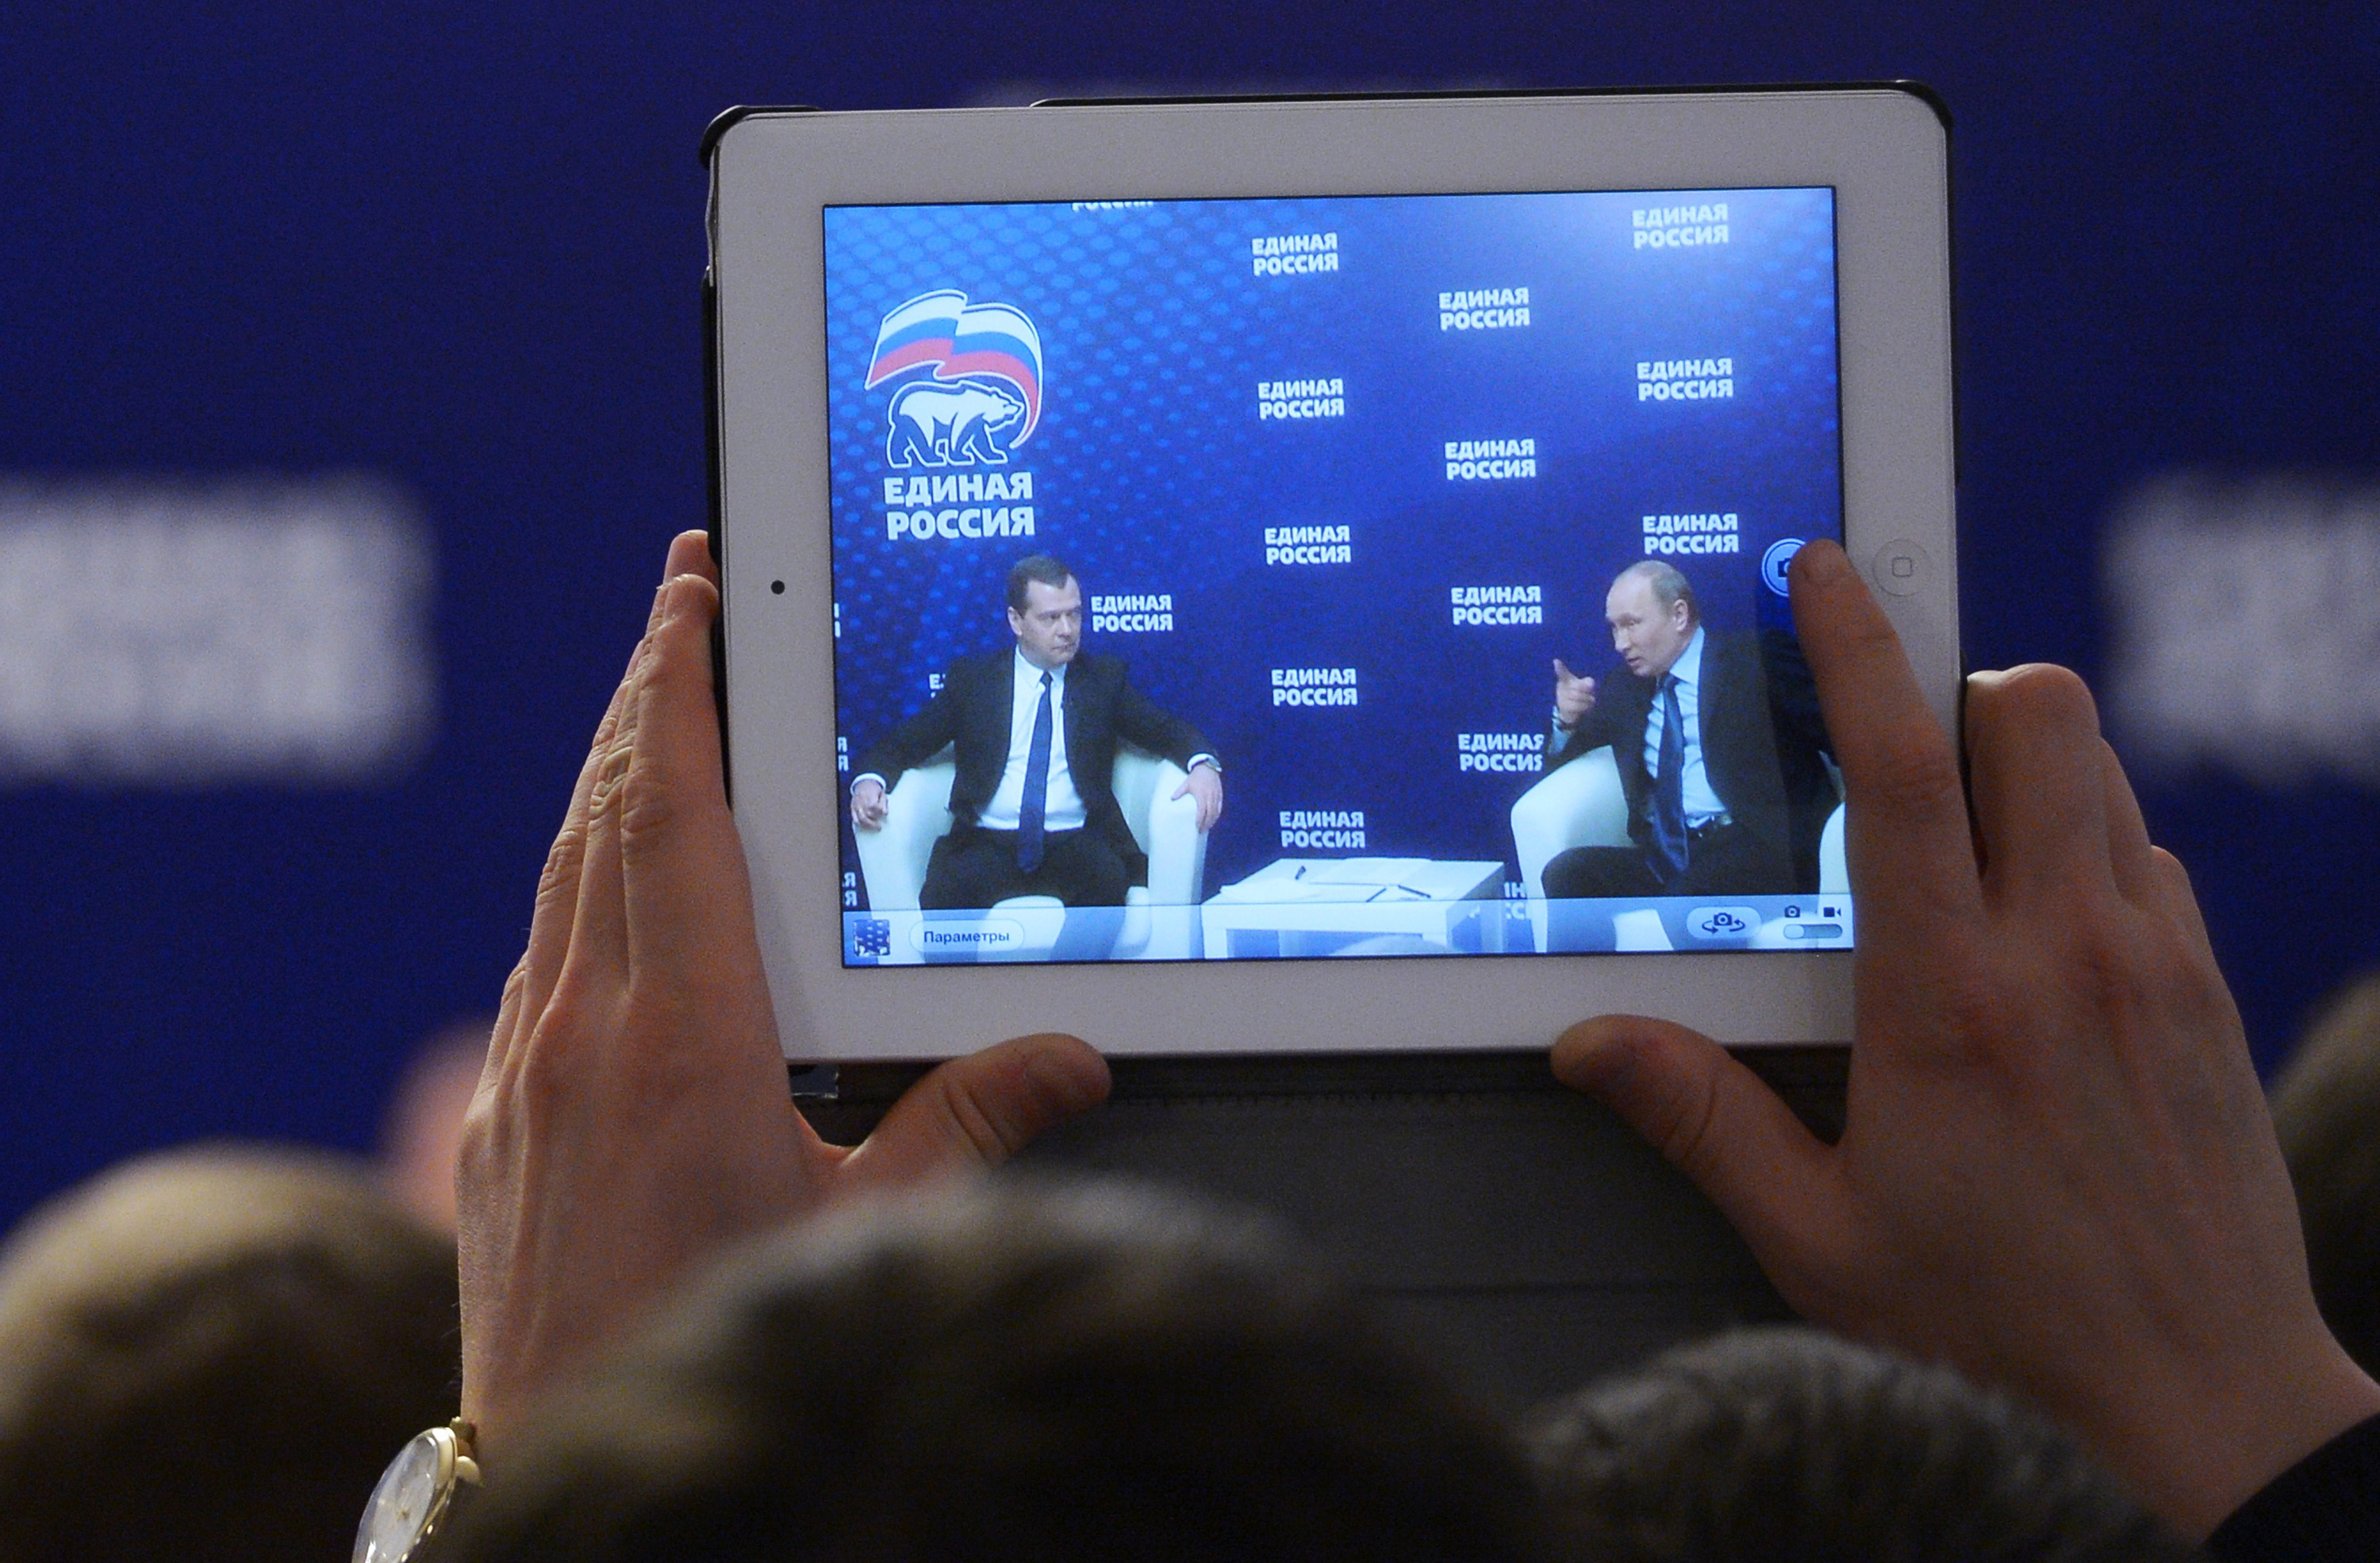 A man takes a photo of Russian President Vladimir Putin, right, and Prime Minister Dmitry Medvedev, with a tablet in 2013. (AP Photo/RIA-Novosti, Alexander Astafyev, Government Press Service)